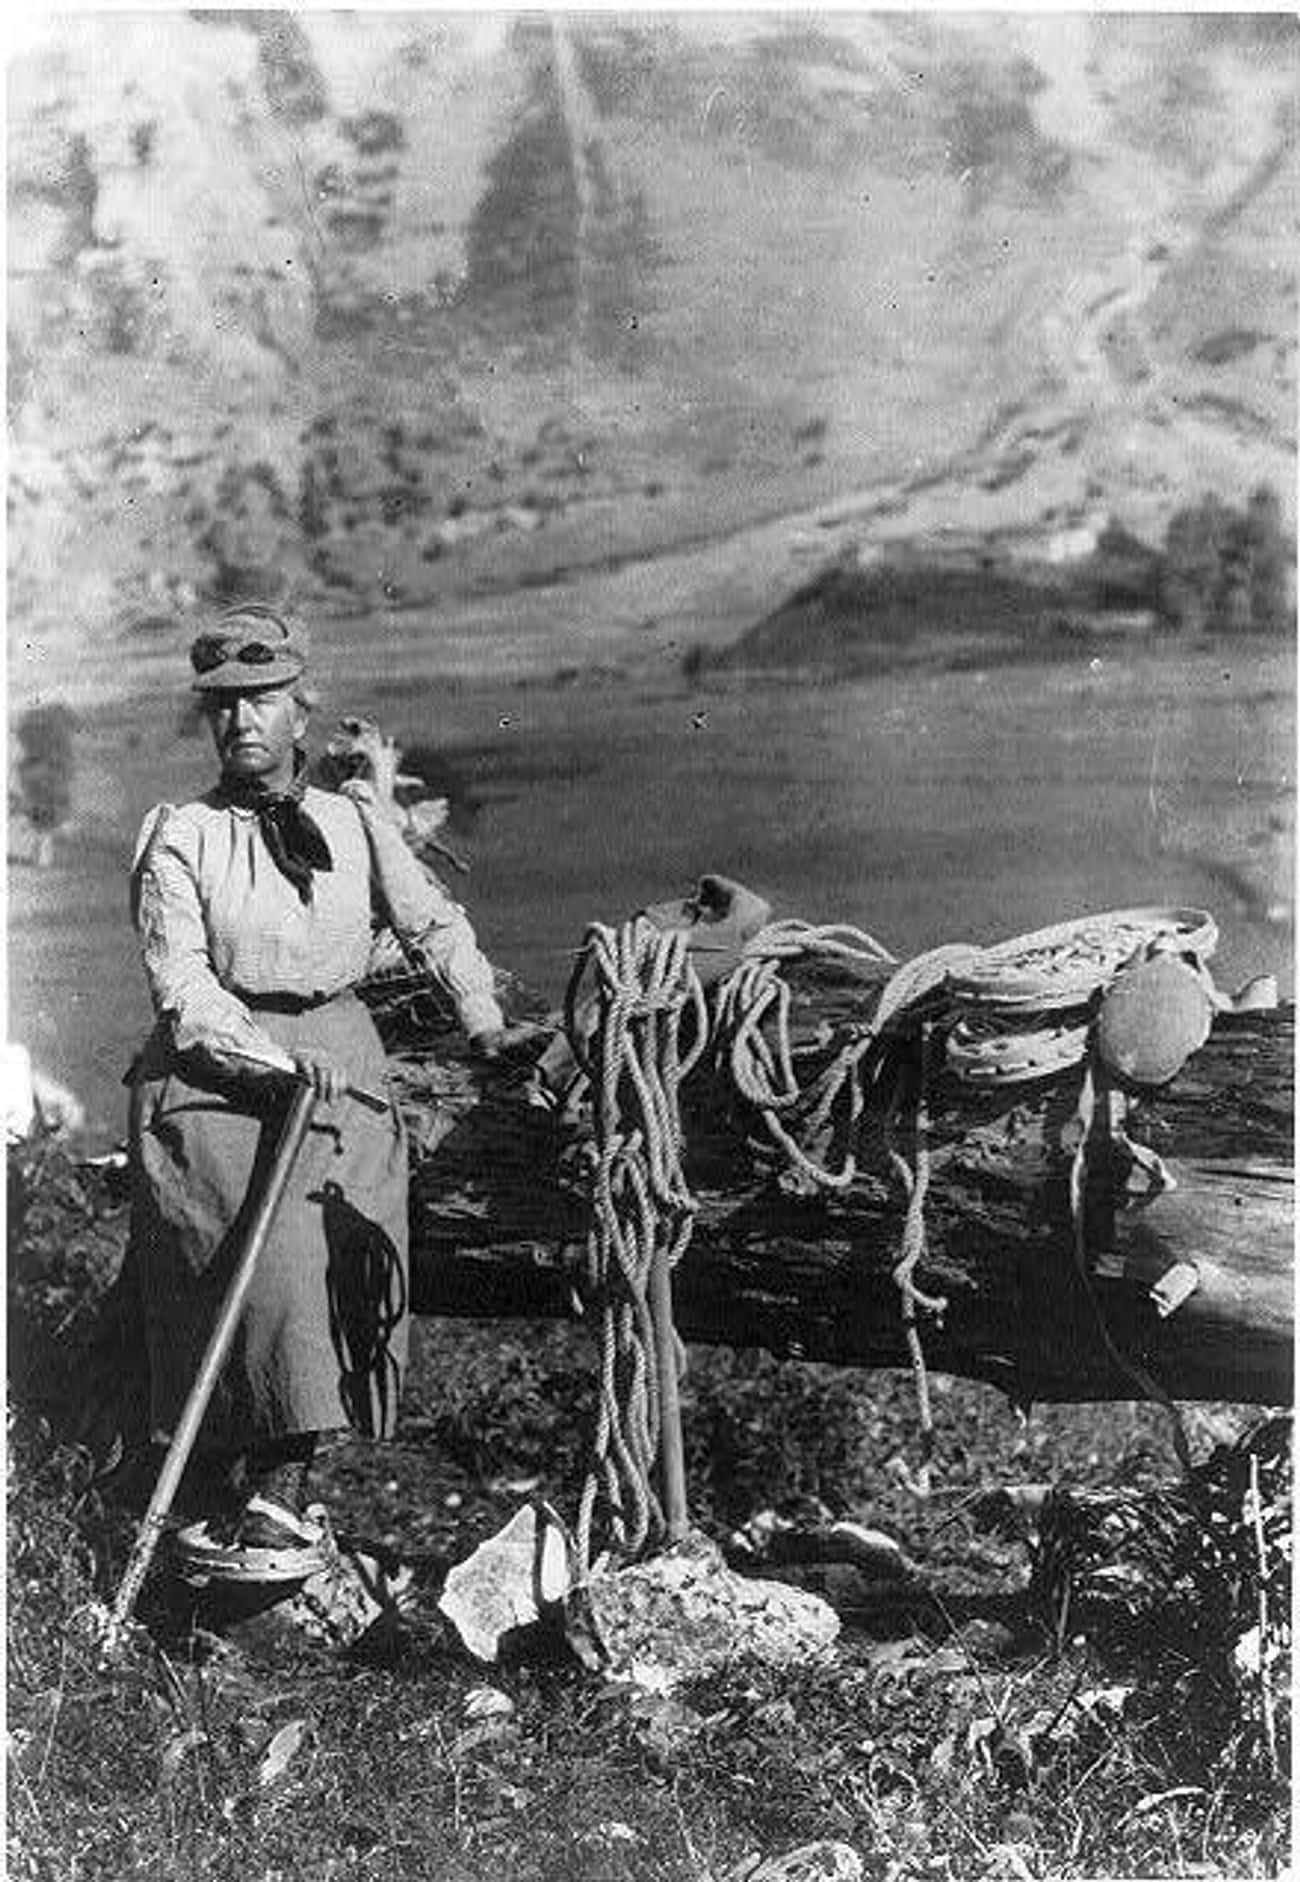 Fannie Bullock Workman Posed O is listed (or ranked) 4 on the list 25 Awesome Photos of Early 1900s Mountain Climbers